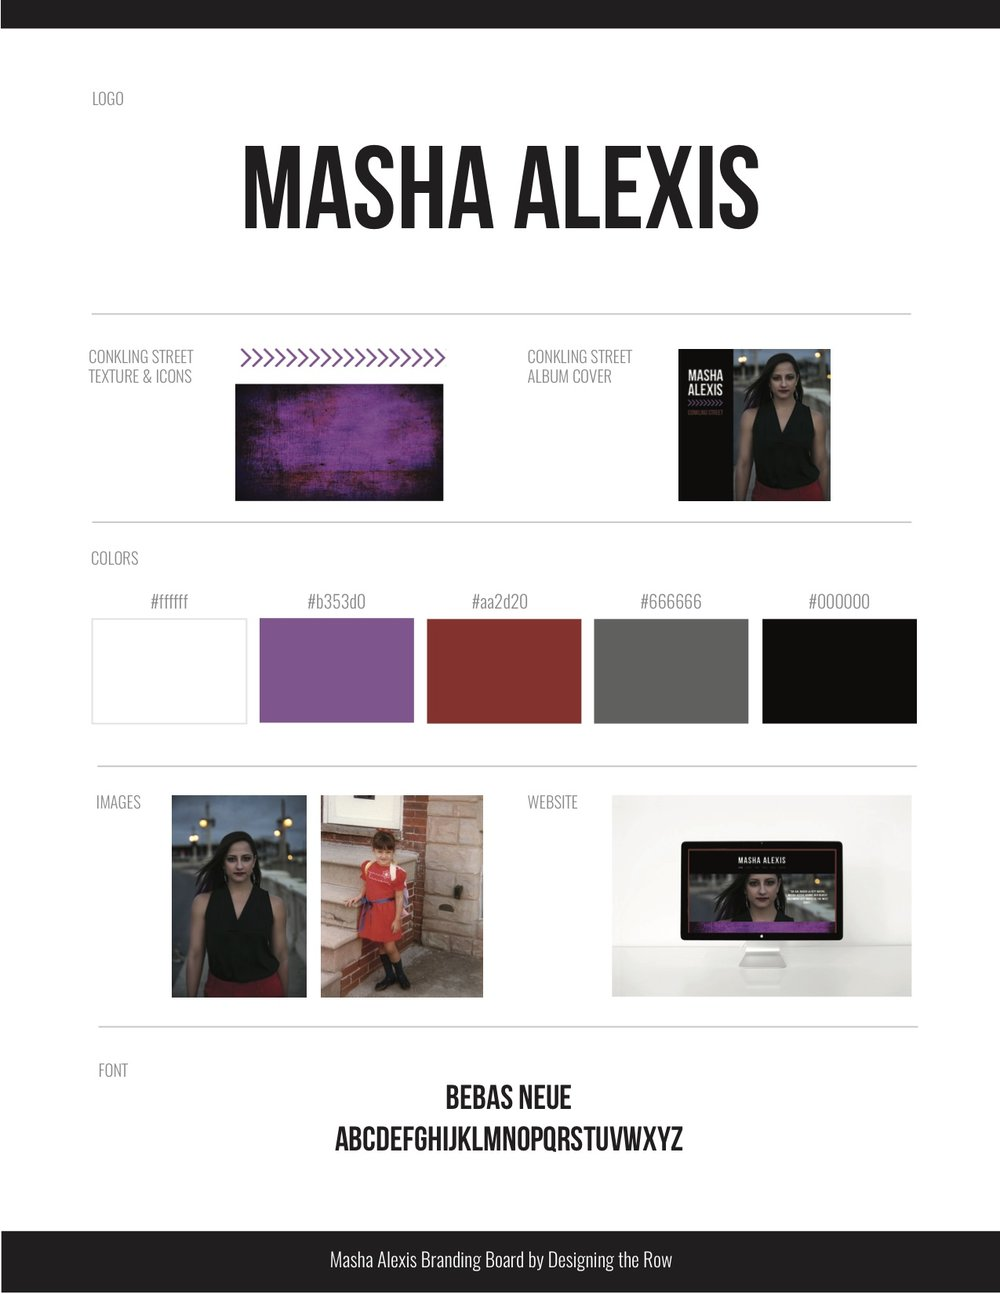 Masha Alexis website branding board | Designing the Row